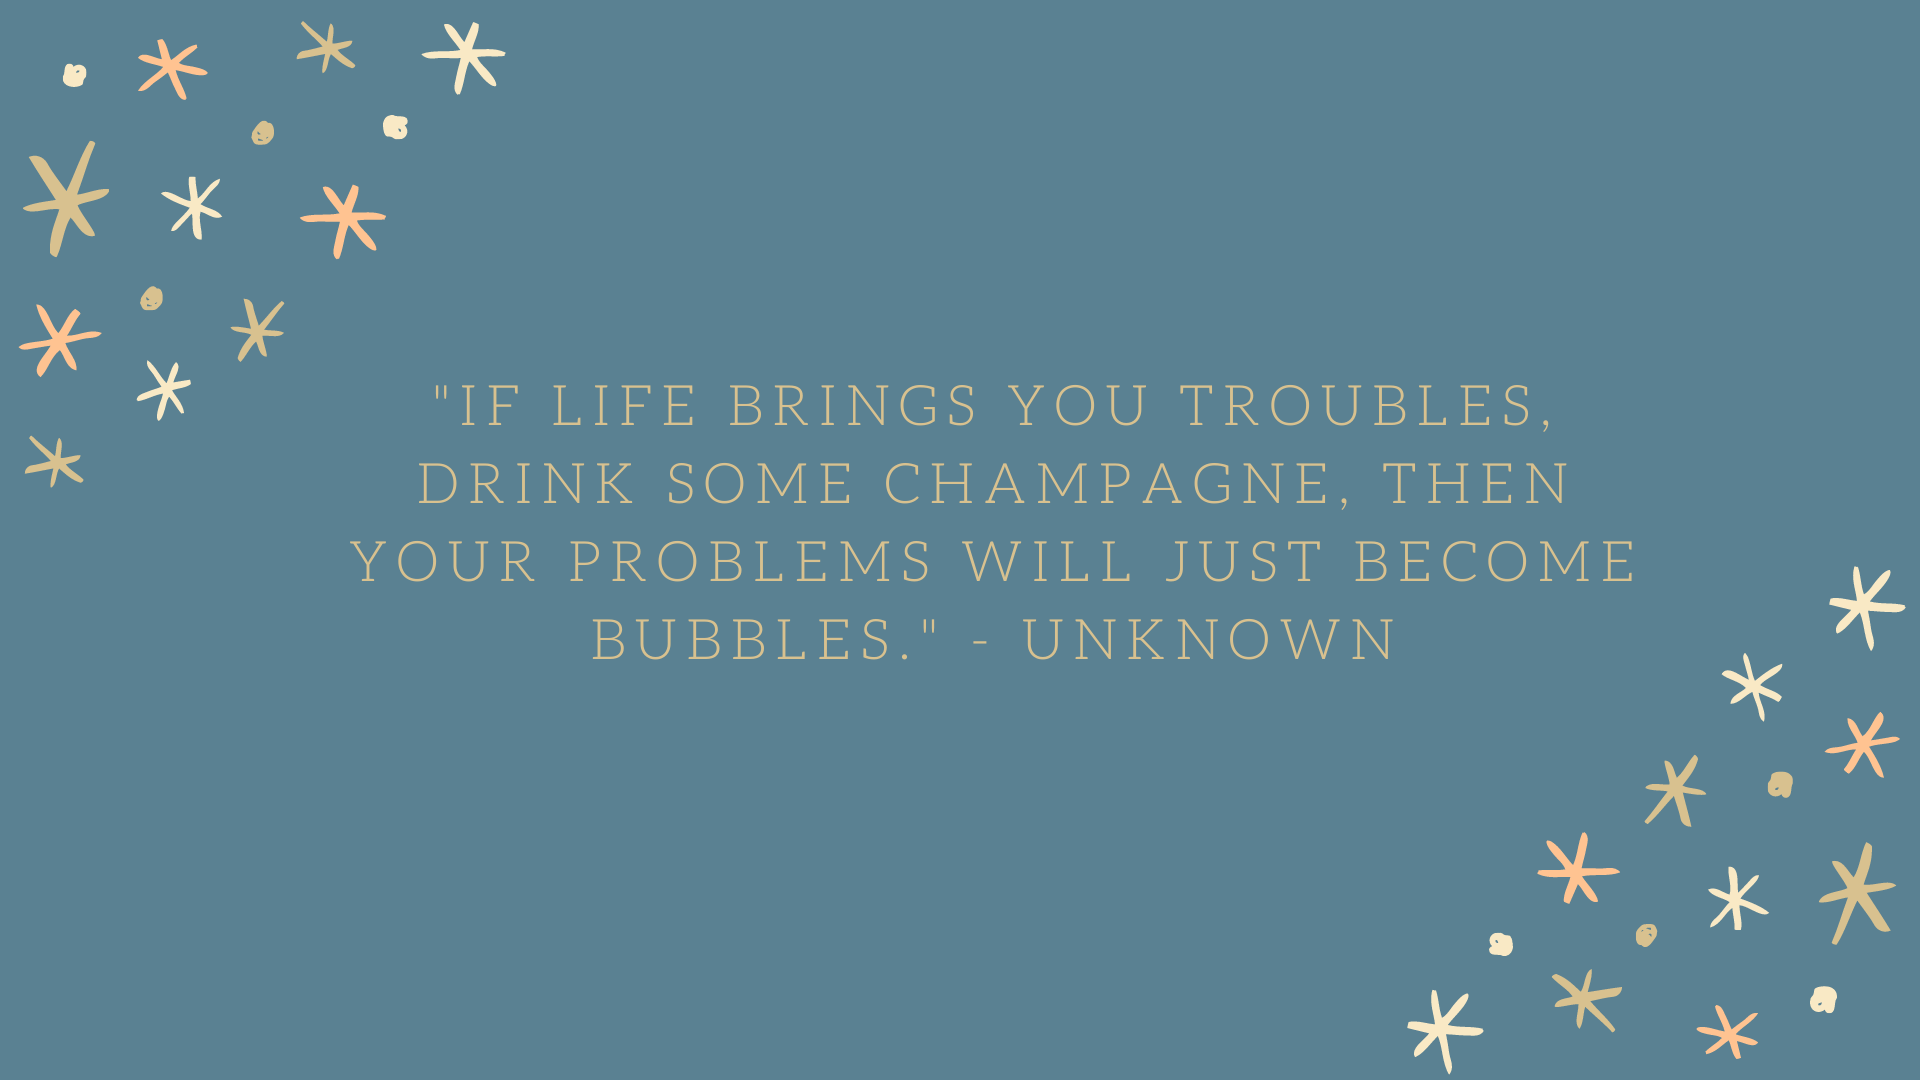 """If life brings you troubles, drink some champagne, then your problems will just become bubbles."" - Unknown"